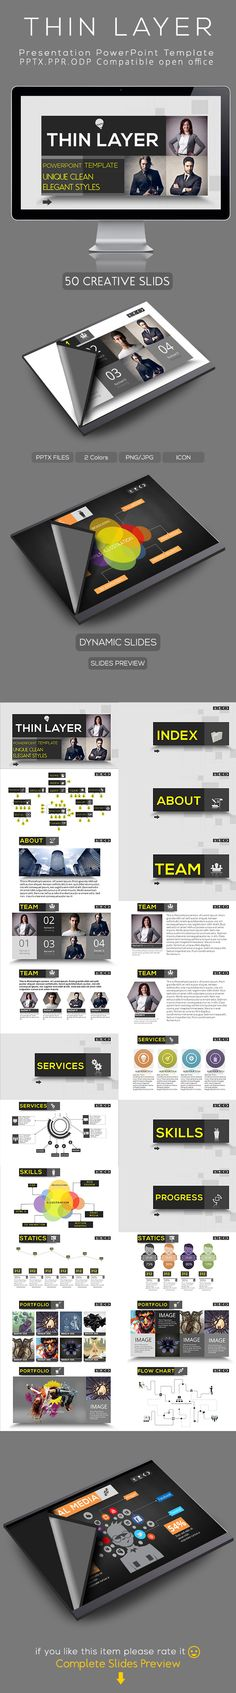 strata keynote template, Presentation templates